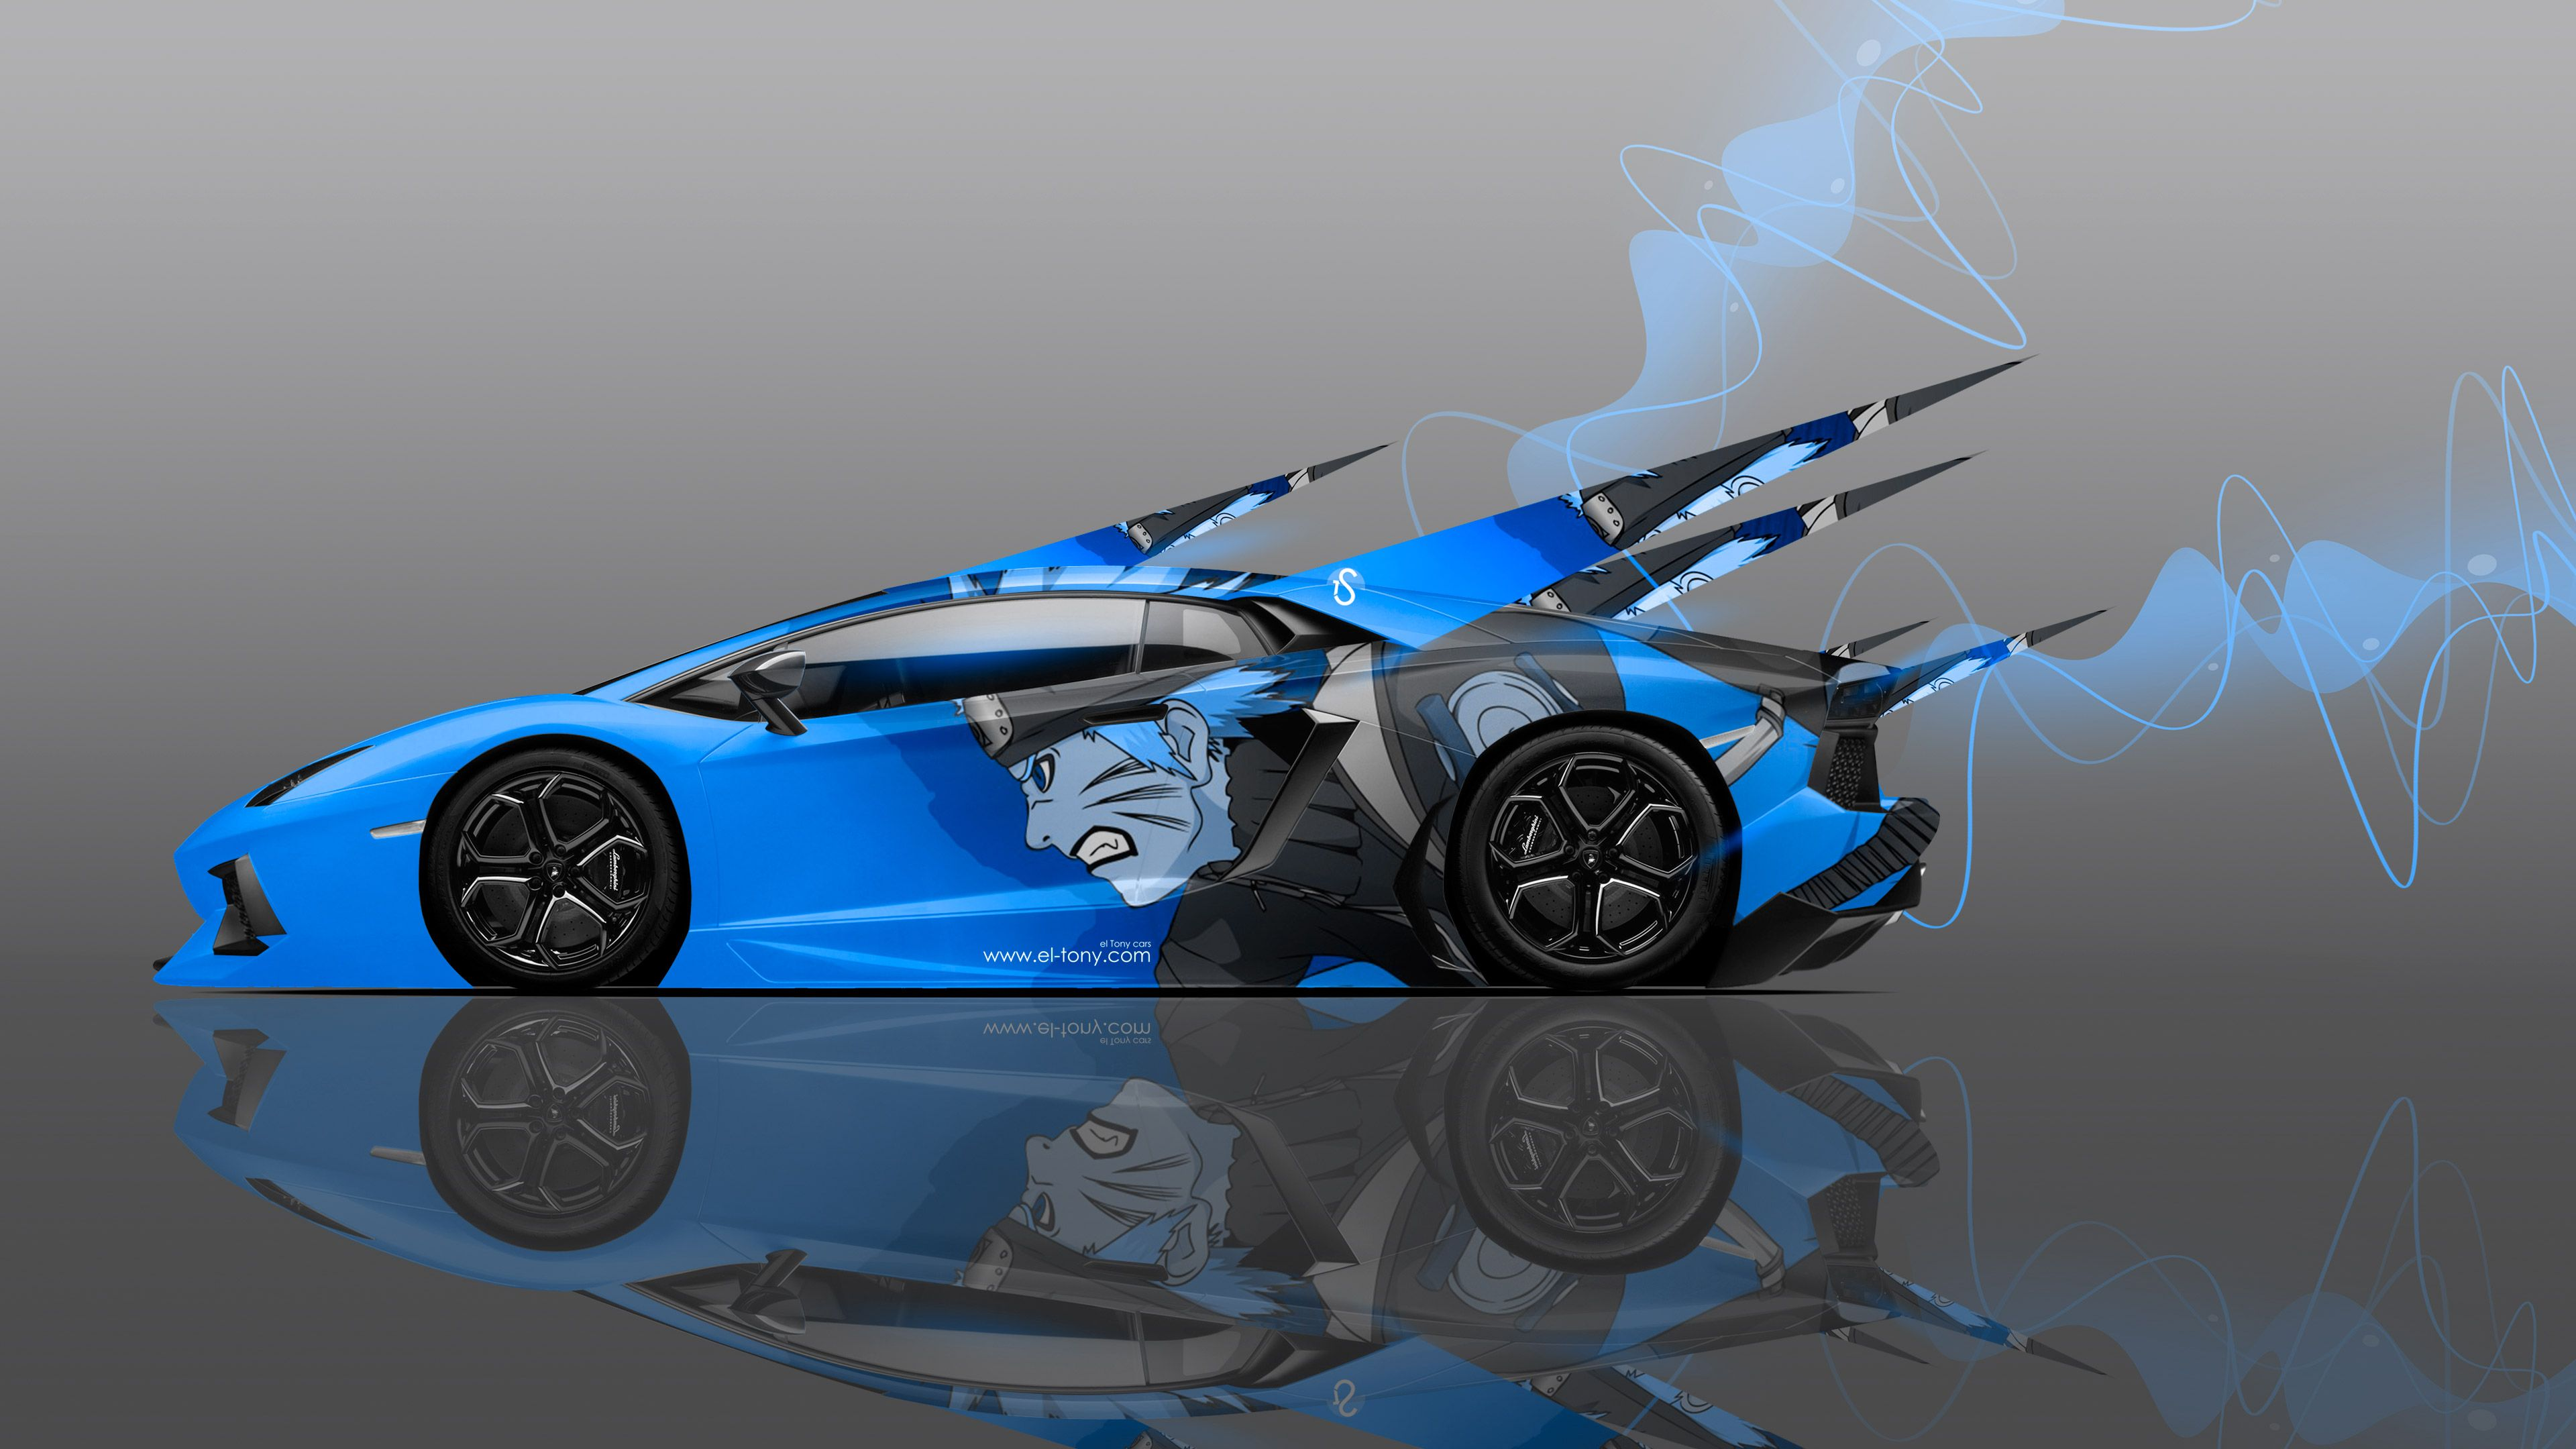 Lamborghini Aventador Design Art   Google Search | CARSSSSZZ | Pinterest | Lamborghini  Aventador And Lamborghini